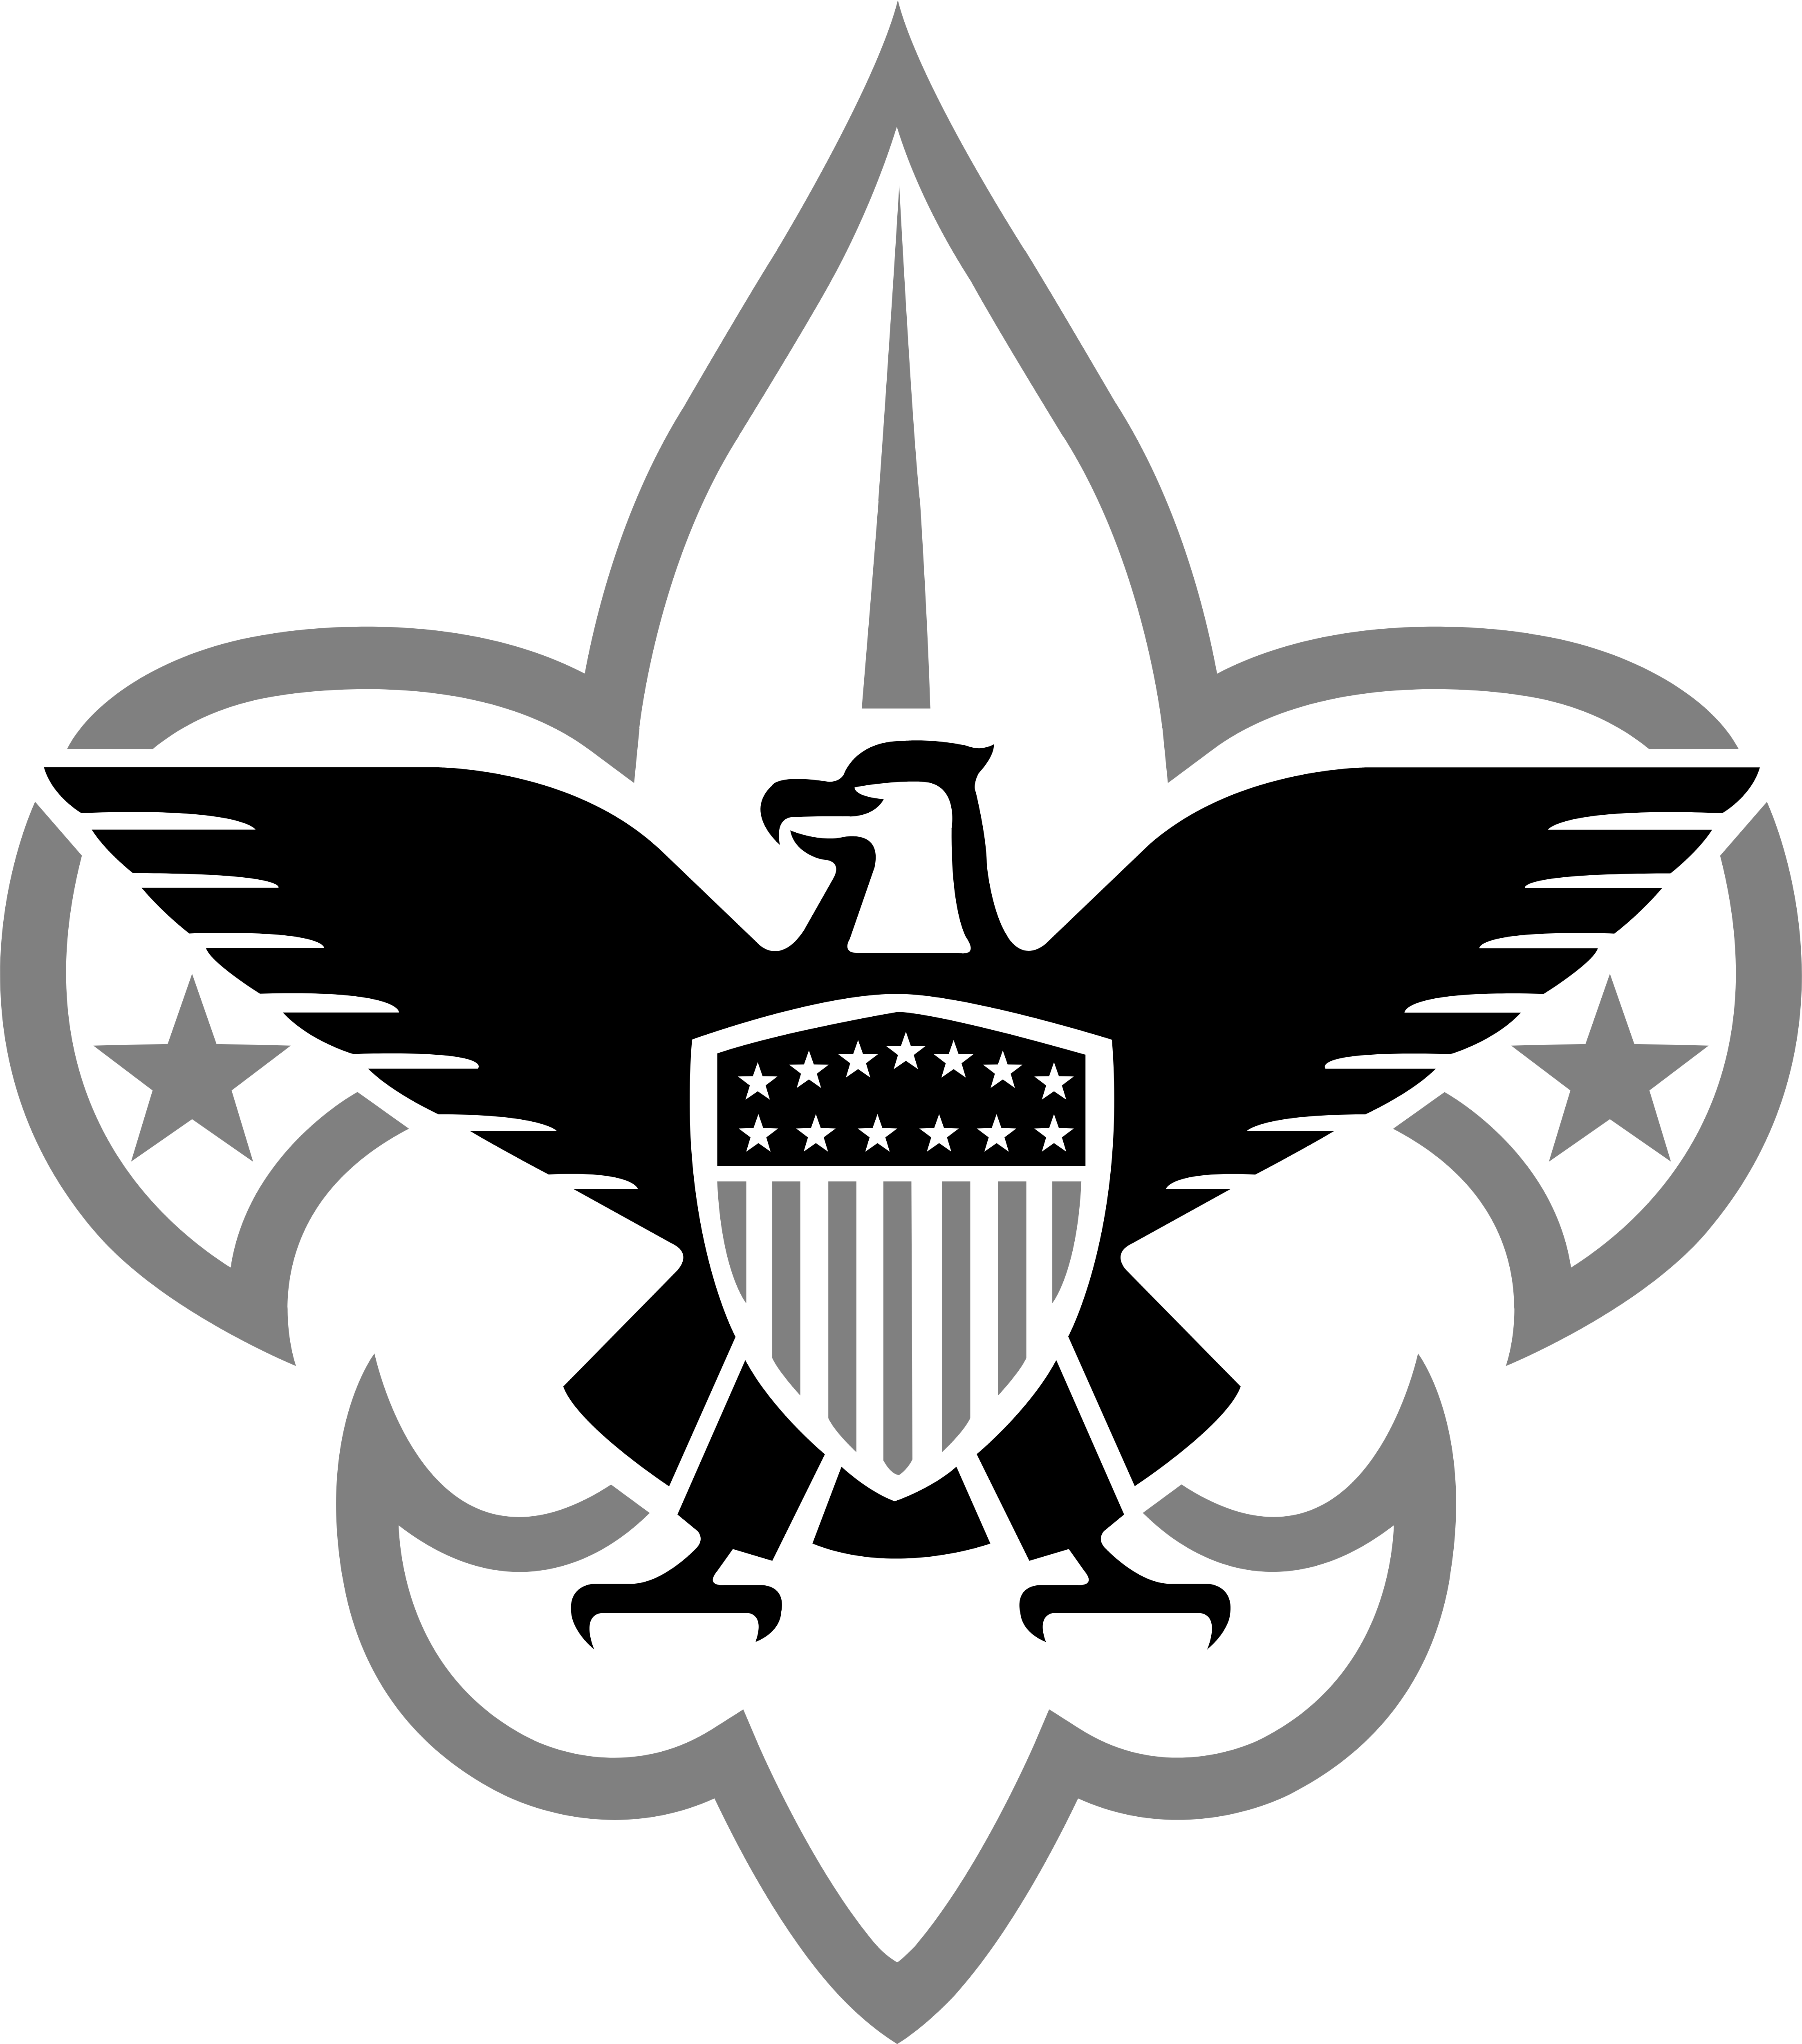 Boy scout logo vector clipart images gallery for free download.